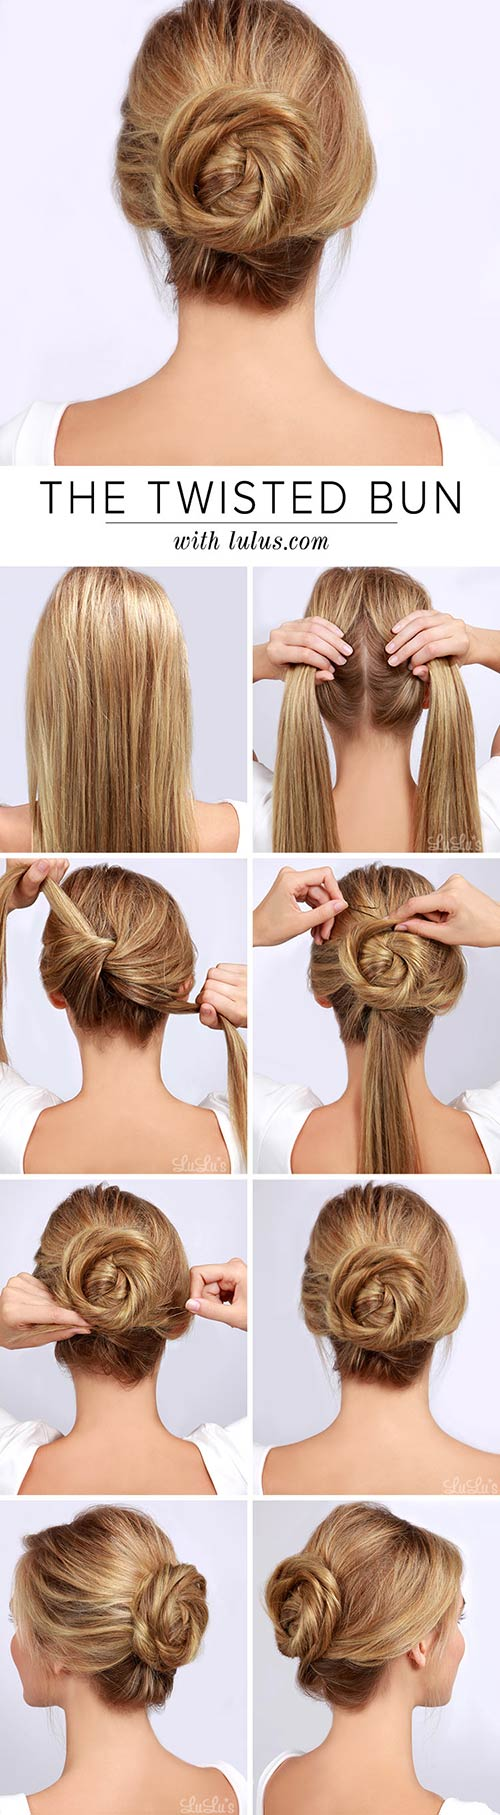 1. Twisted Bun